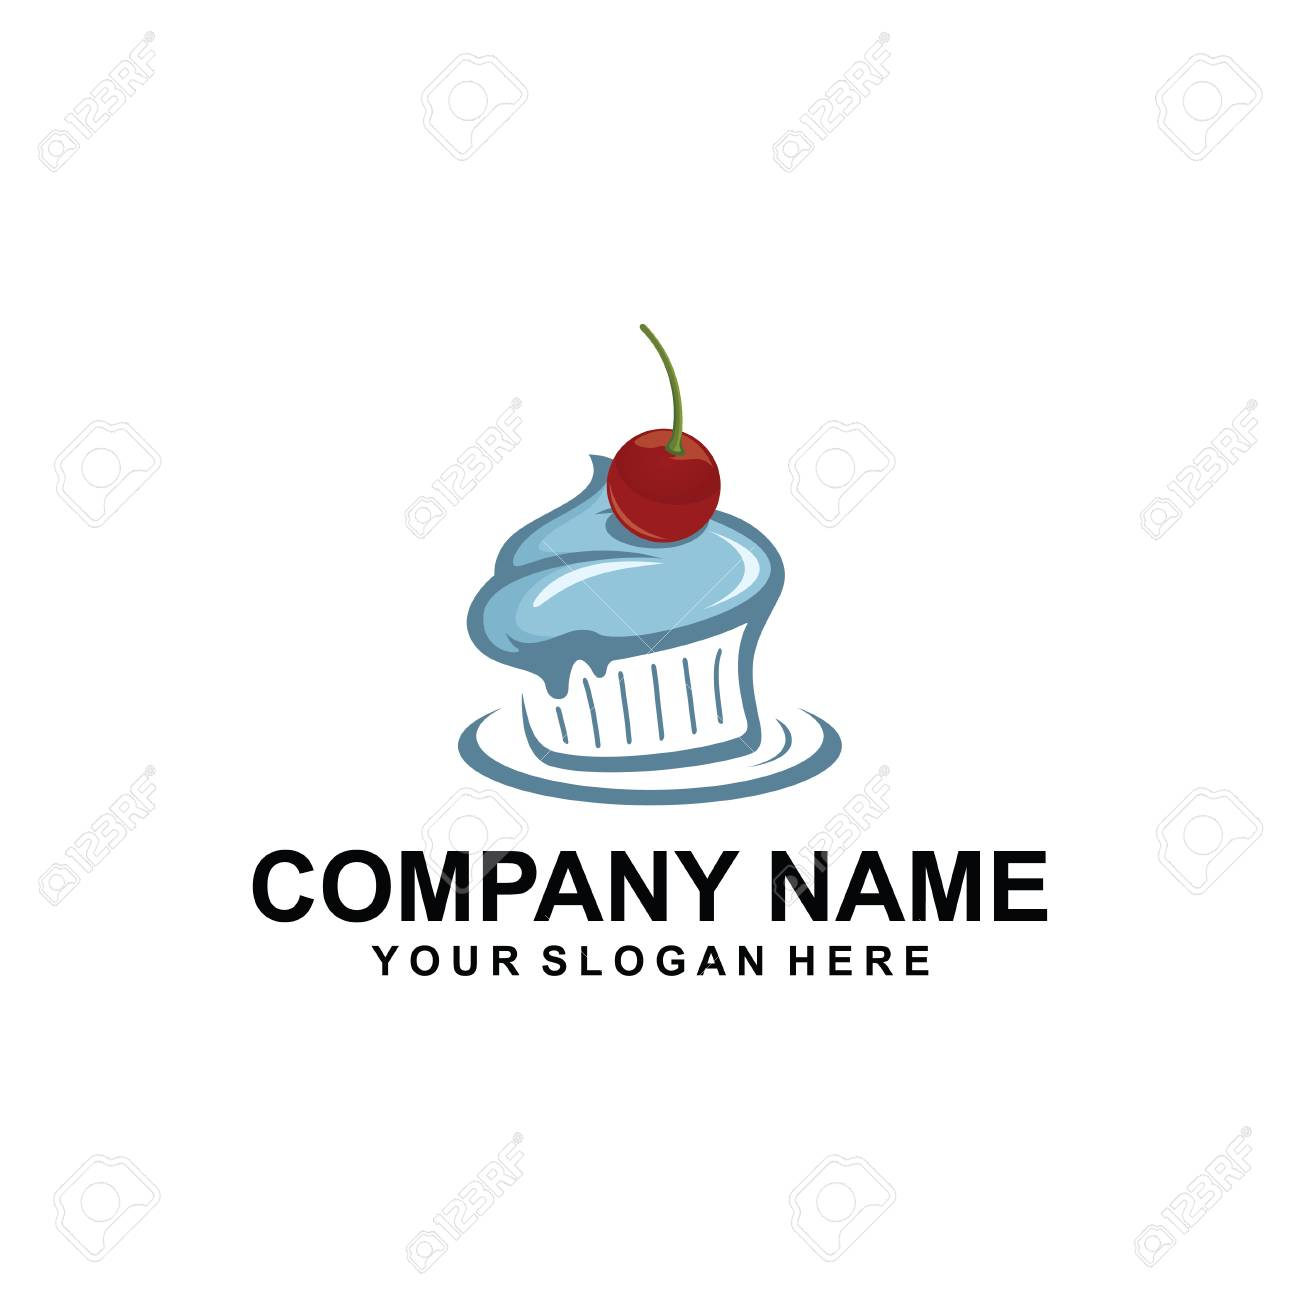 Cake Logo Design Royalty Free Cliparts Vectors And Stock